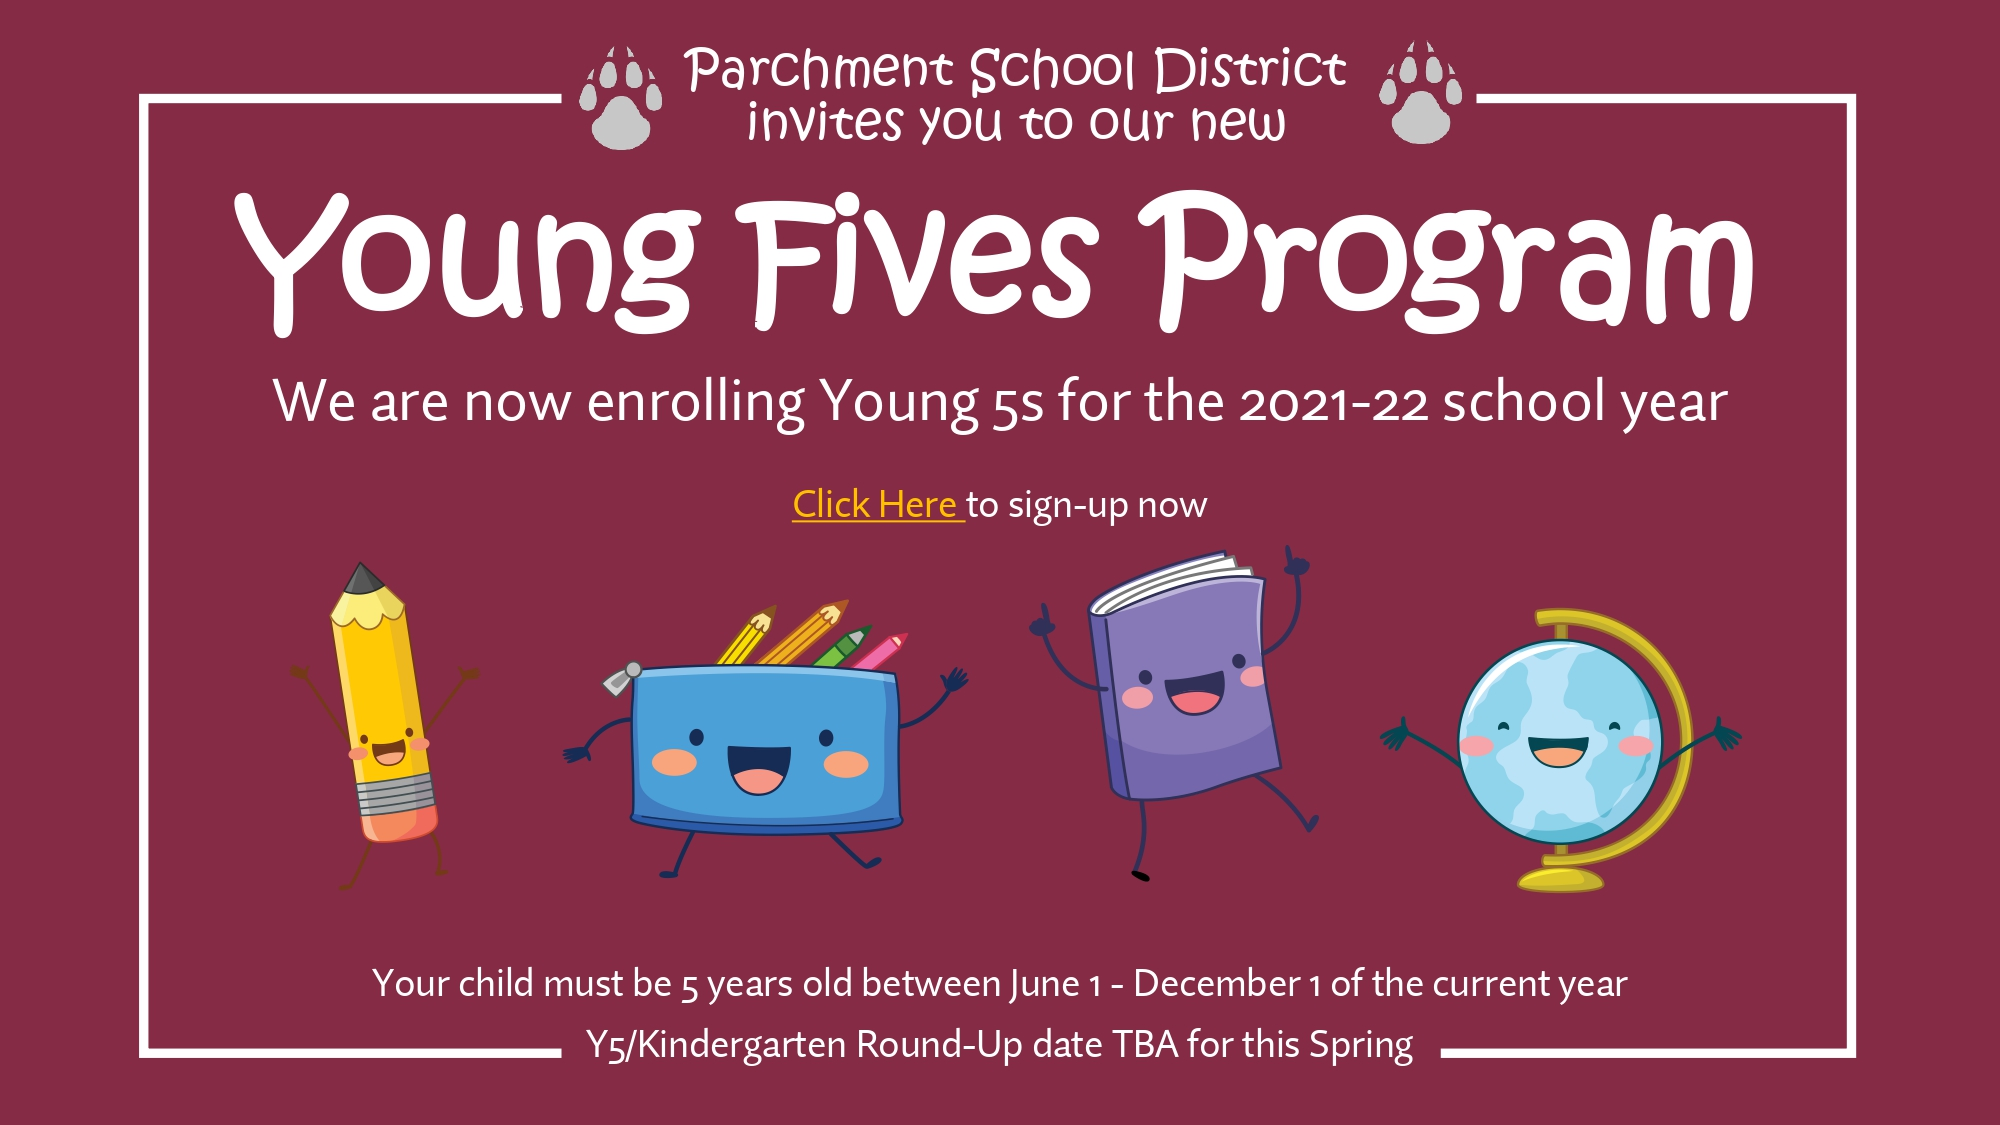 Parchment now offers Young 5s